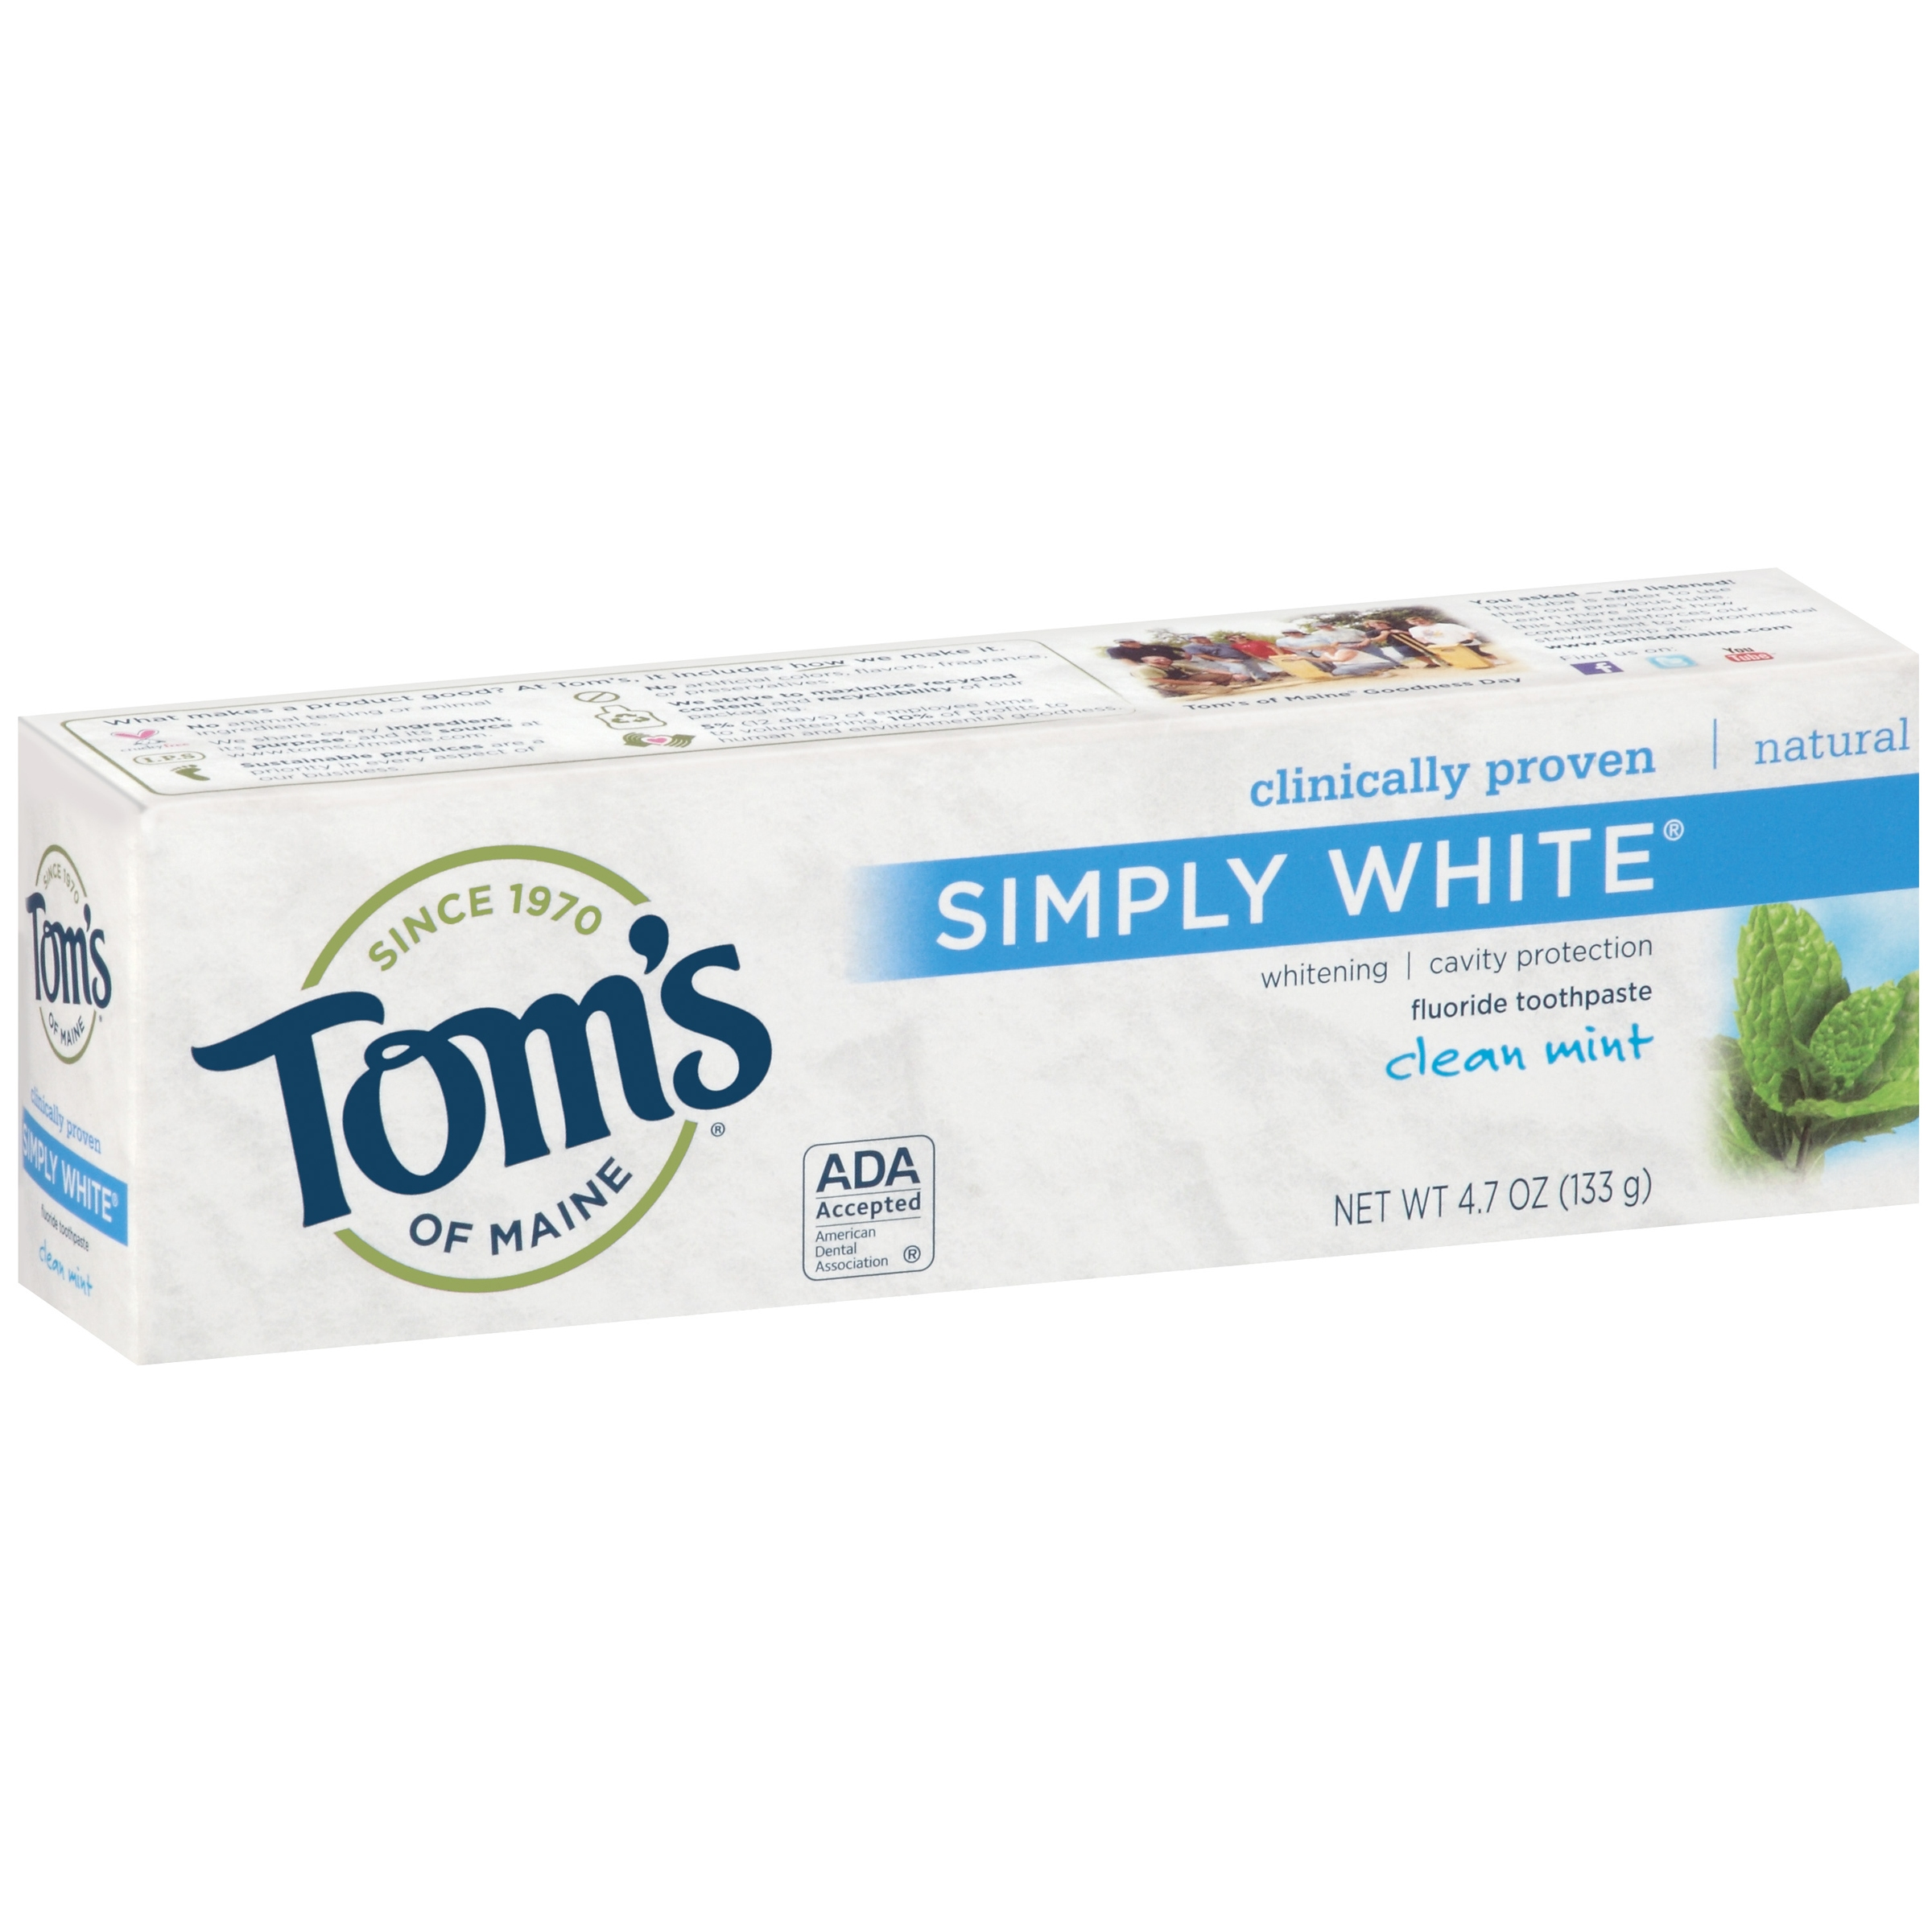 Toms of Maine Simply White Clean Mint Fluoride Toothpaste, 4.7 oz